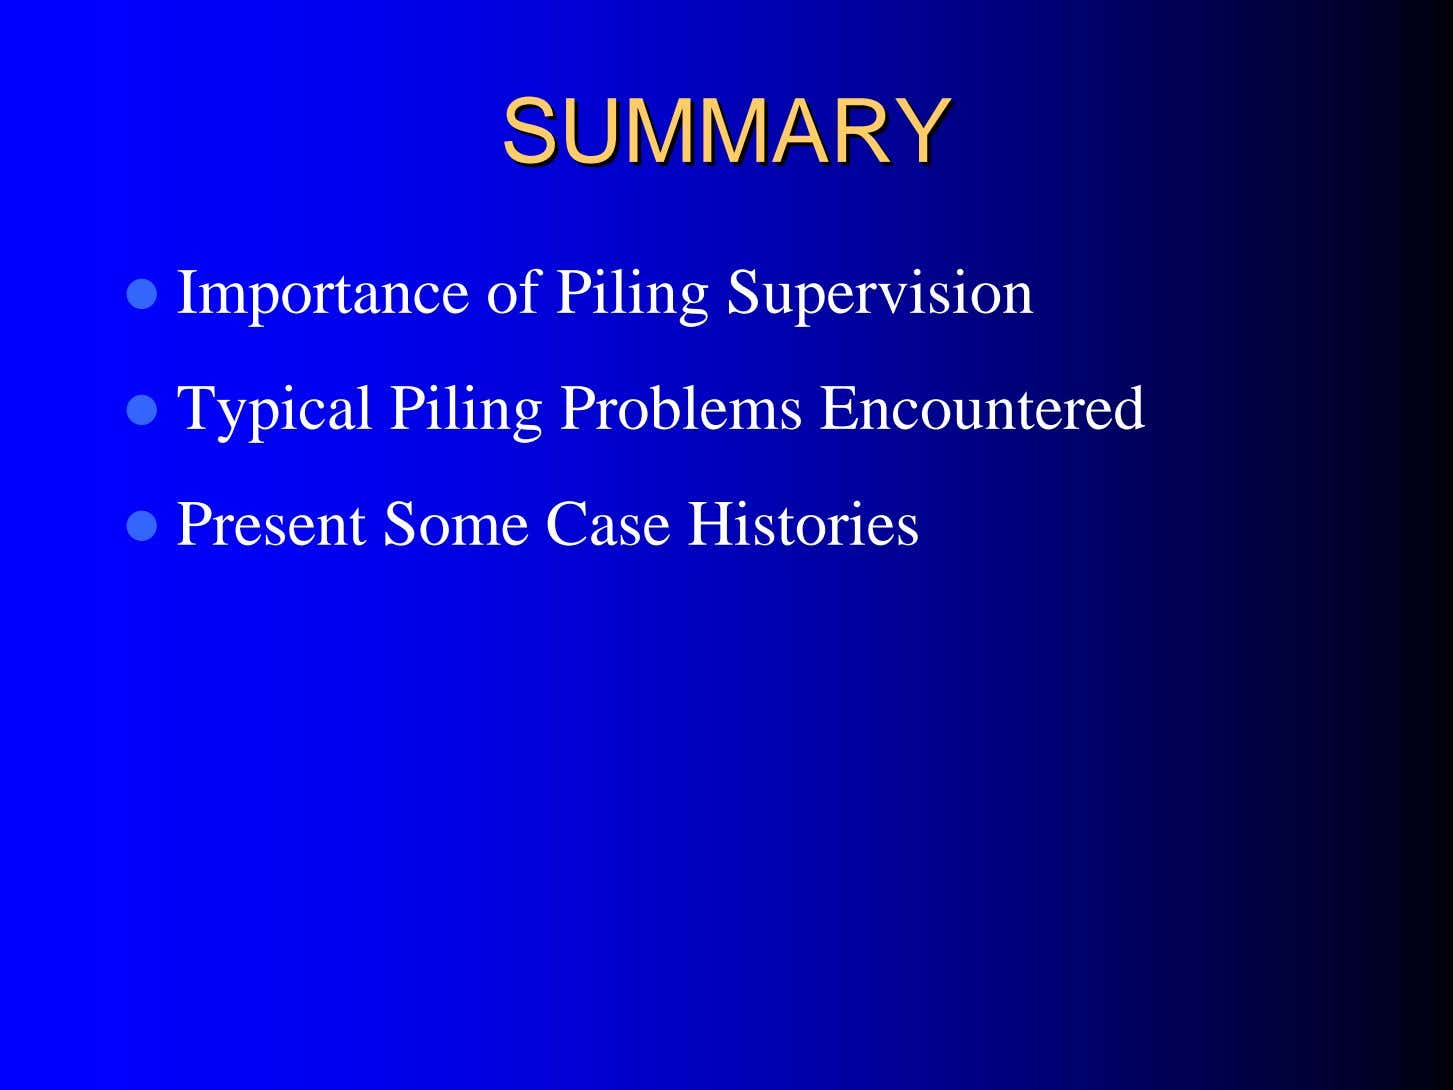 SUMMARYSUMMARY Importance of Piling Supervision Typical Piling Problems Encountered Present Some Case Histories